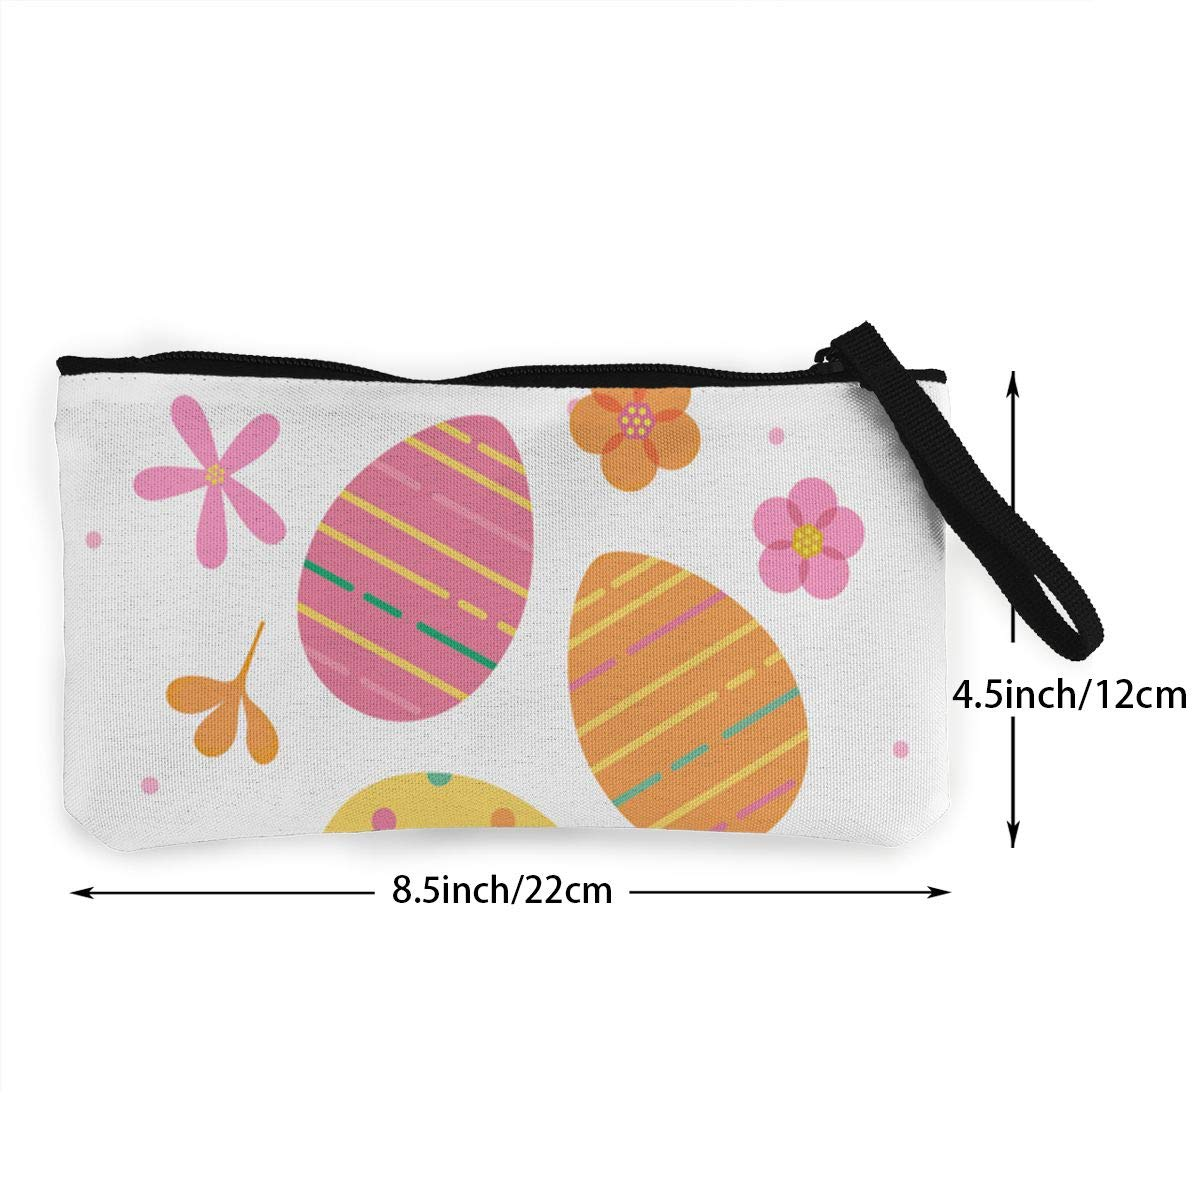 Maple Memories Easter Eggs Portable Canvas Coin Purse Change Purse Pouch Mini Wallet Gifts For Women Girls